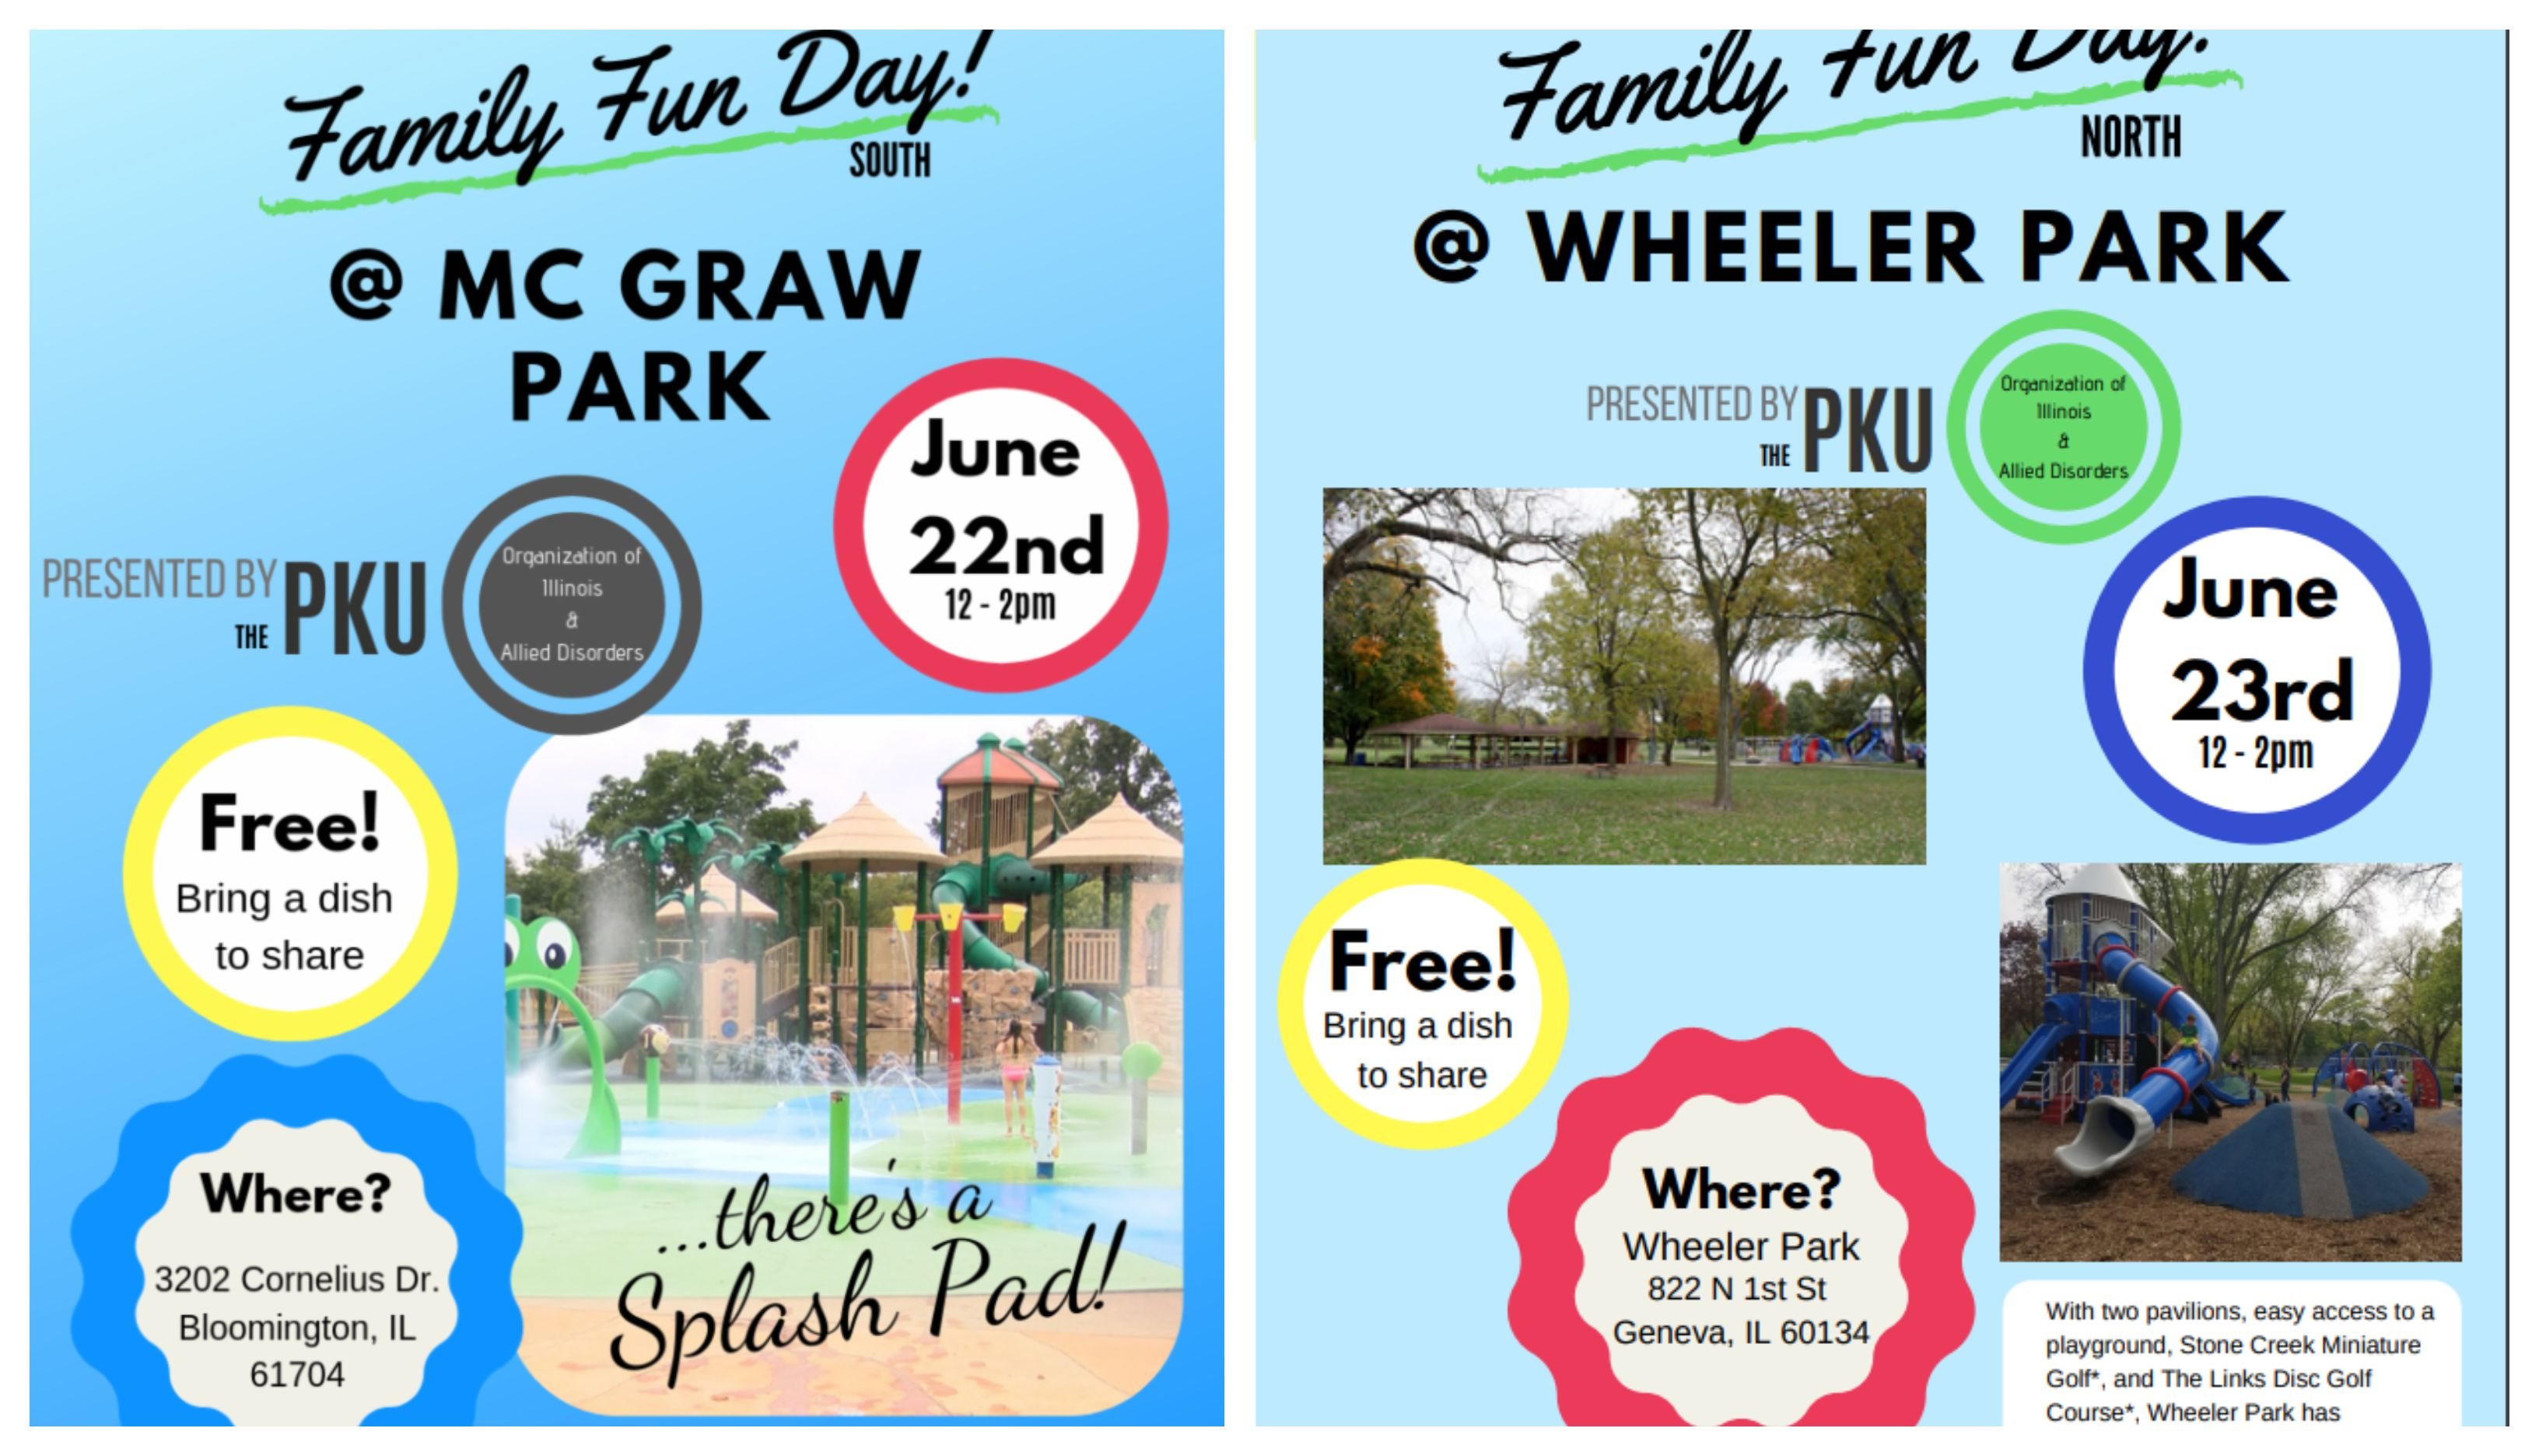 2019 Family Fun Day Registration